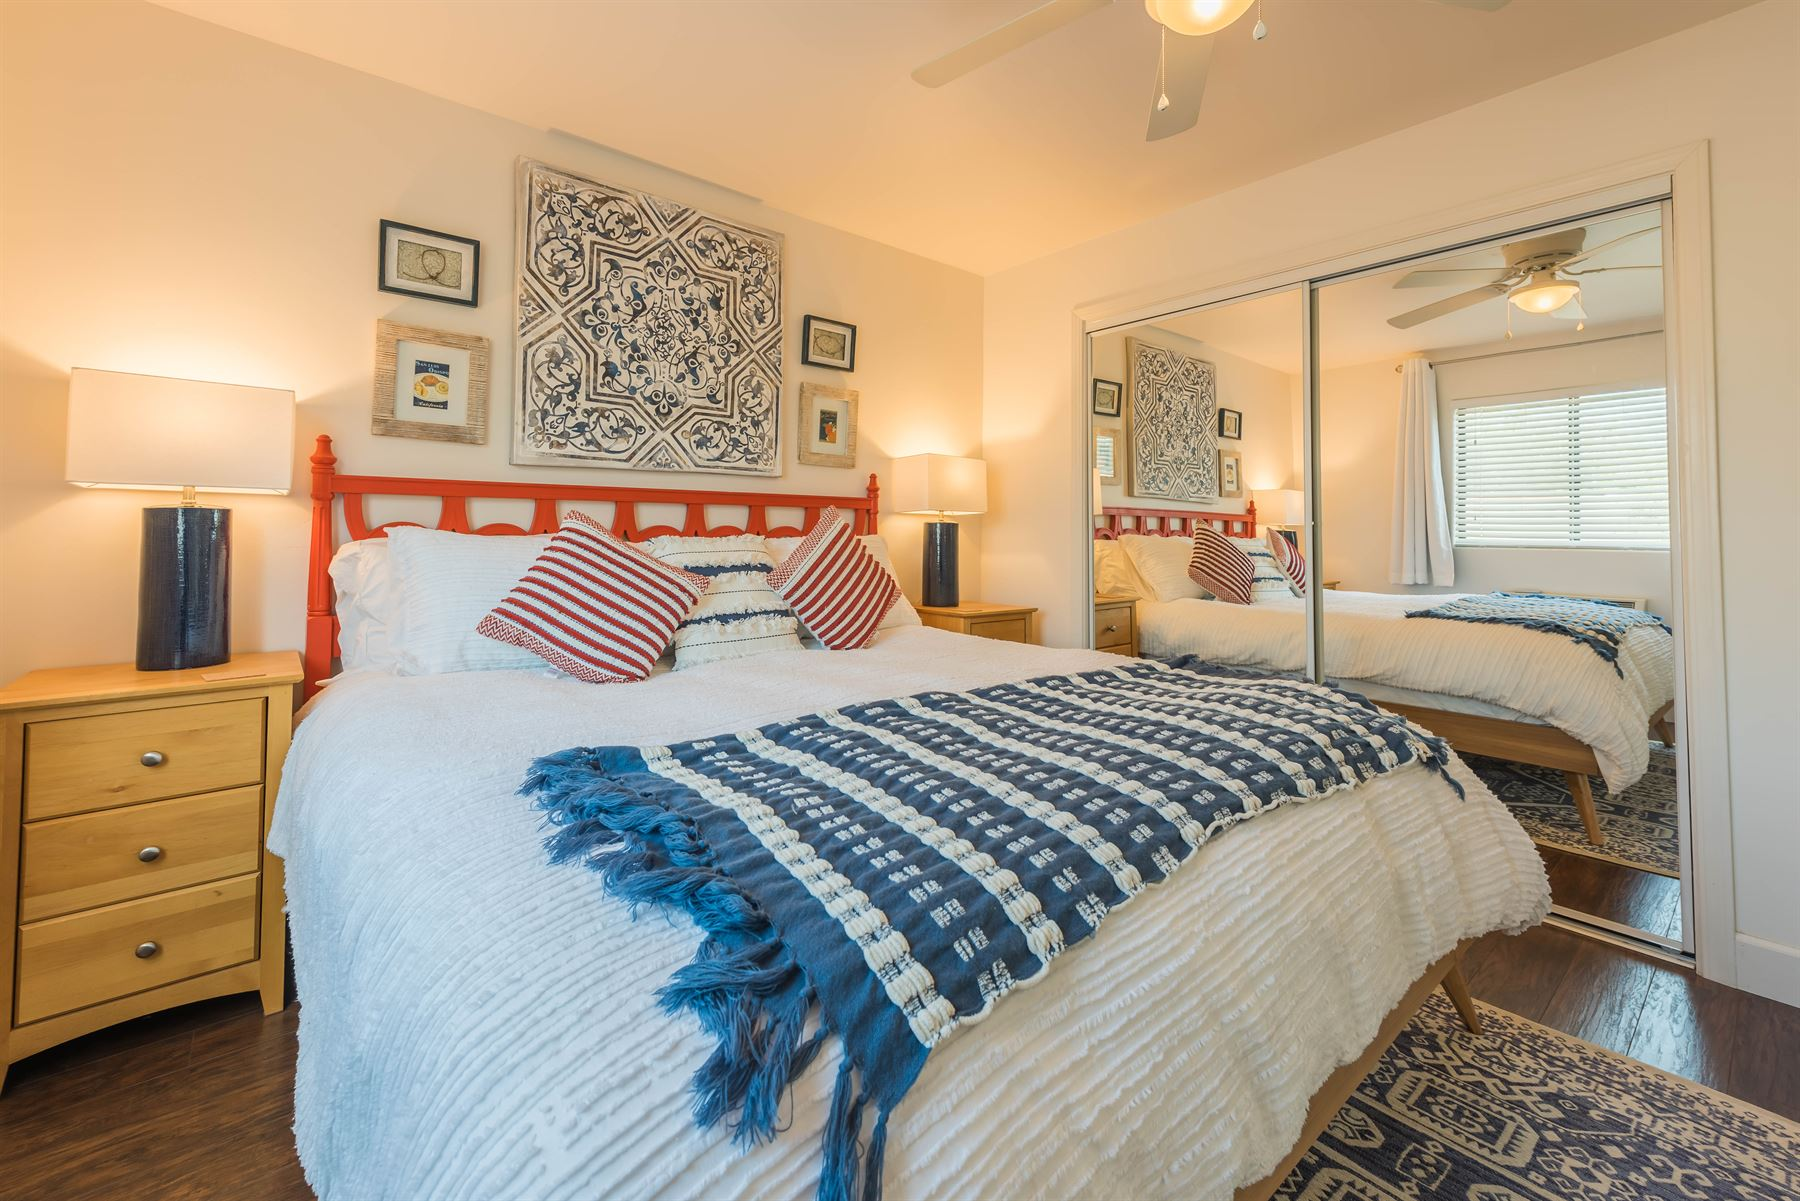 Wine County Casita - Interior - Bedroom with king bed that has a blue and white knitted duvet